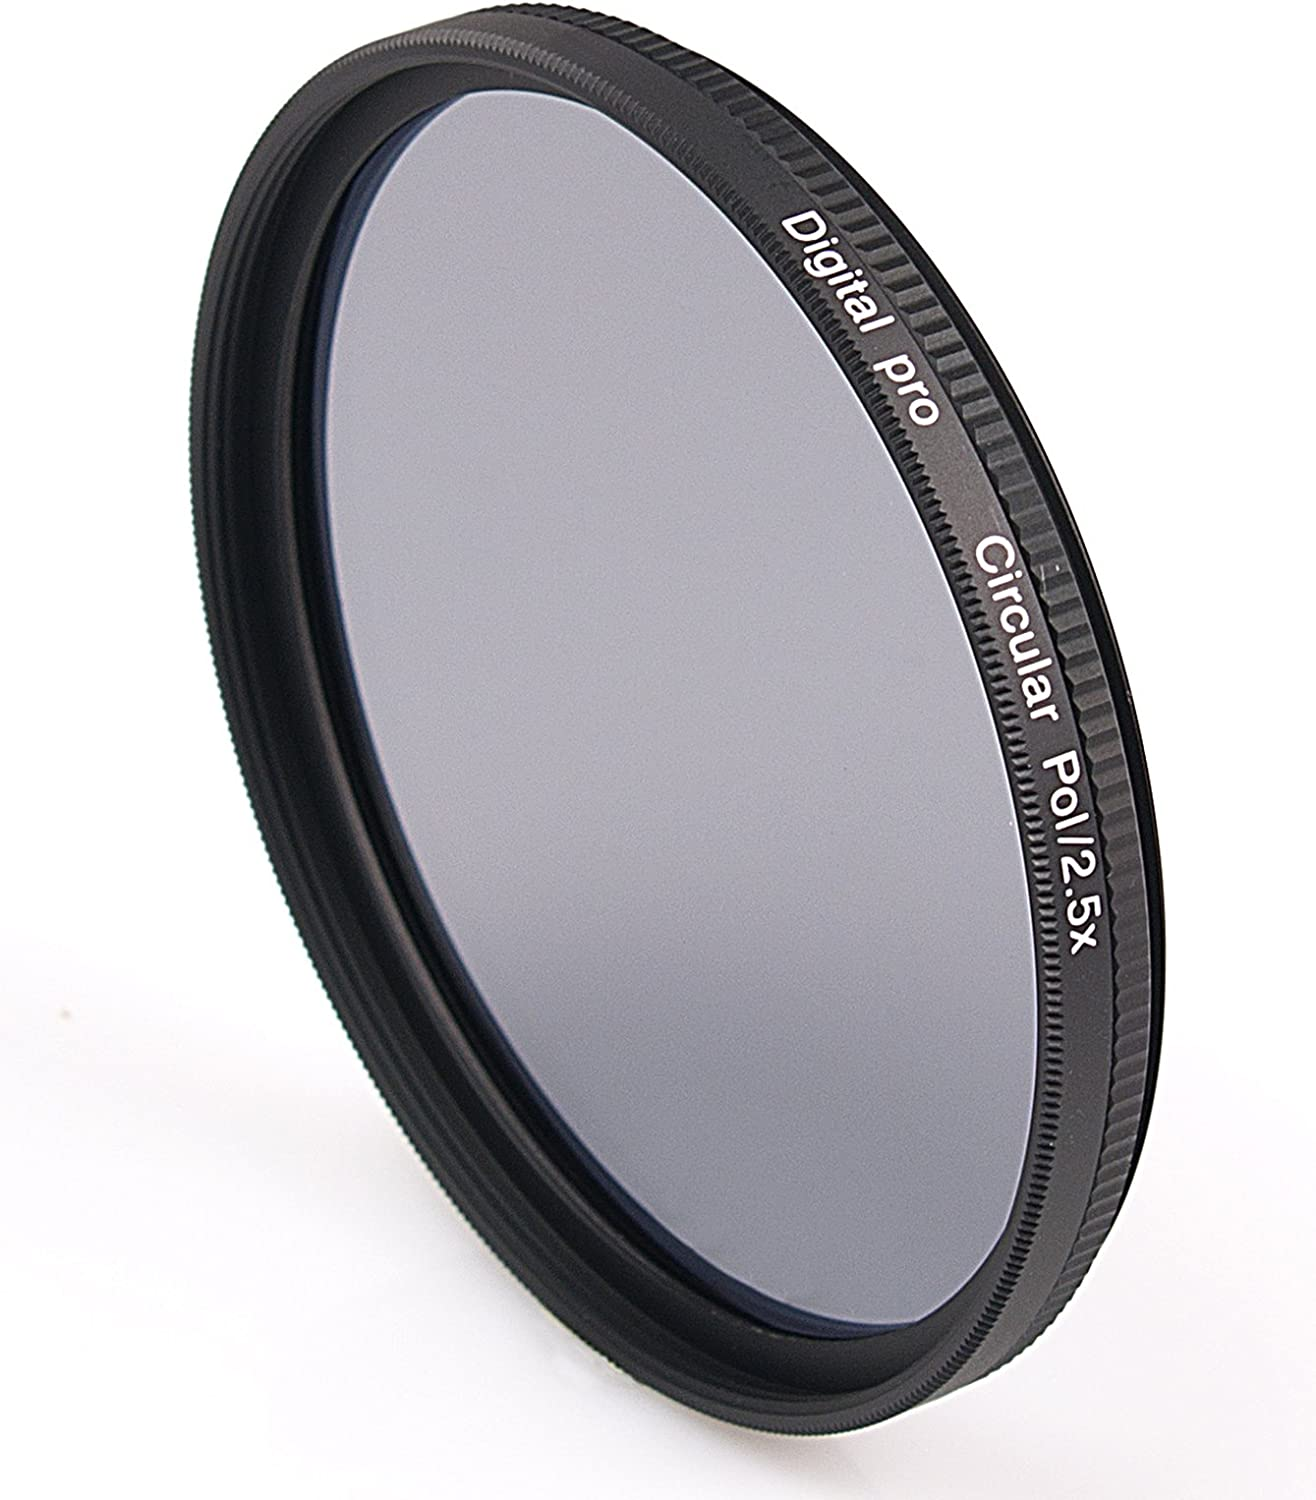 Rodenstock 507240 72mm Circular Polarizer Slim Aluminum Mount Multi-coated Red Label Filter Black//Transparent